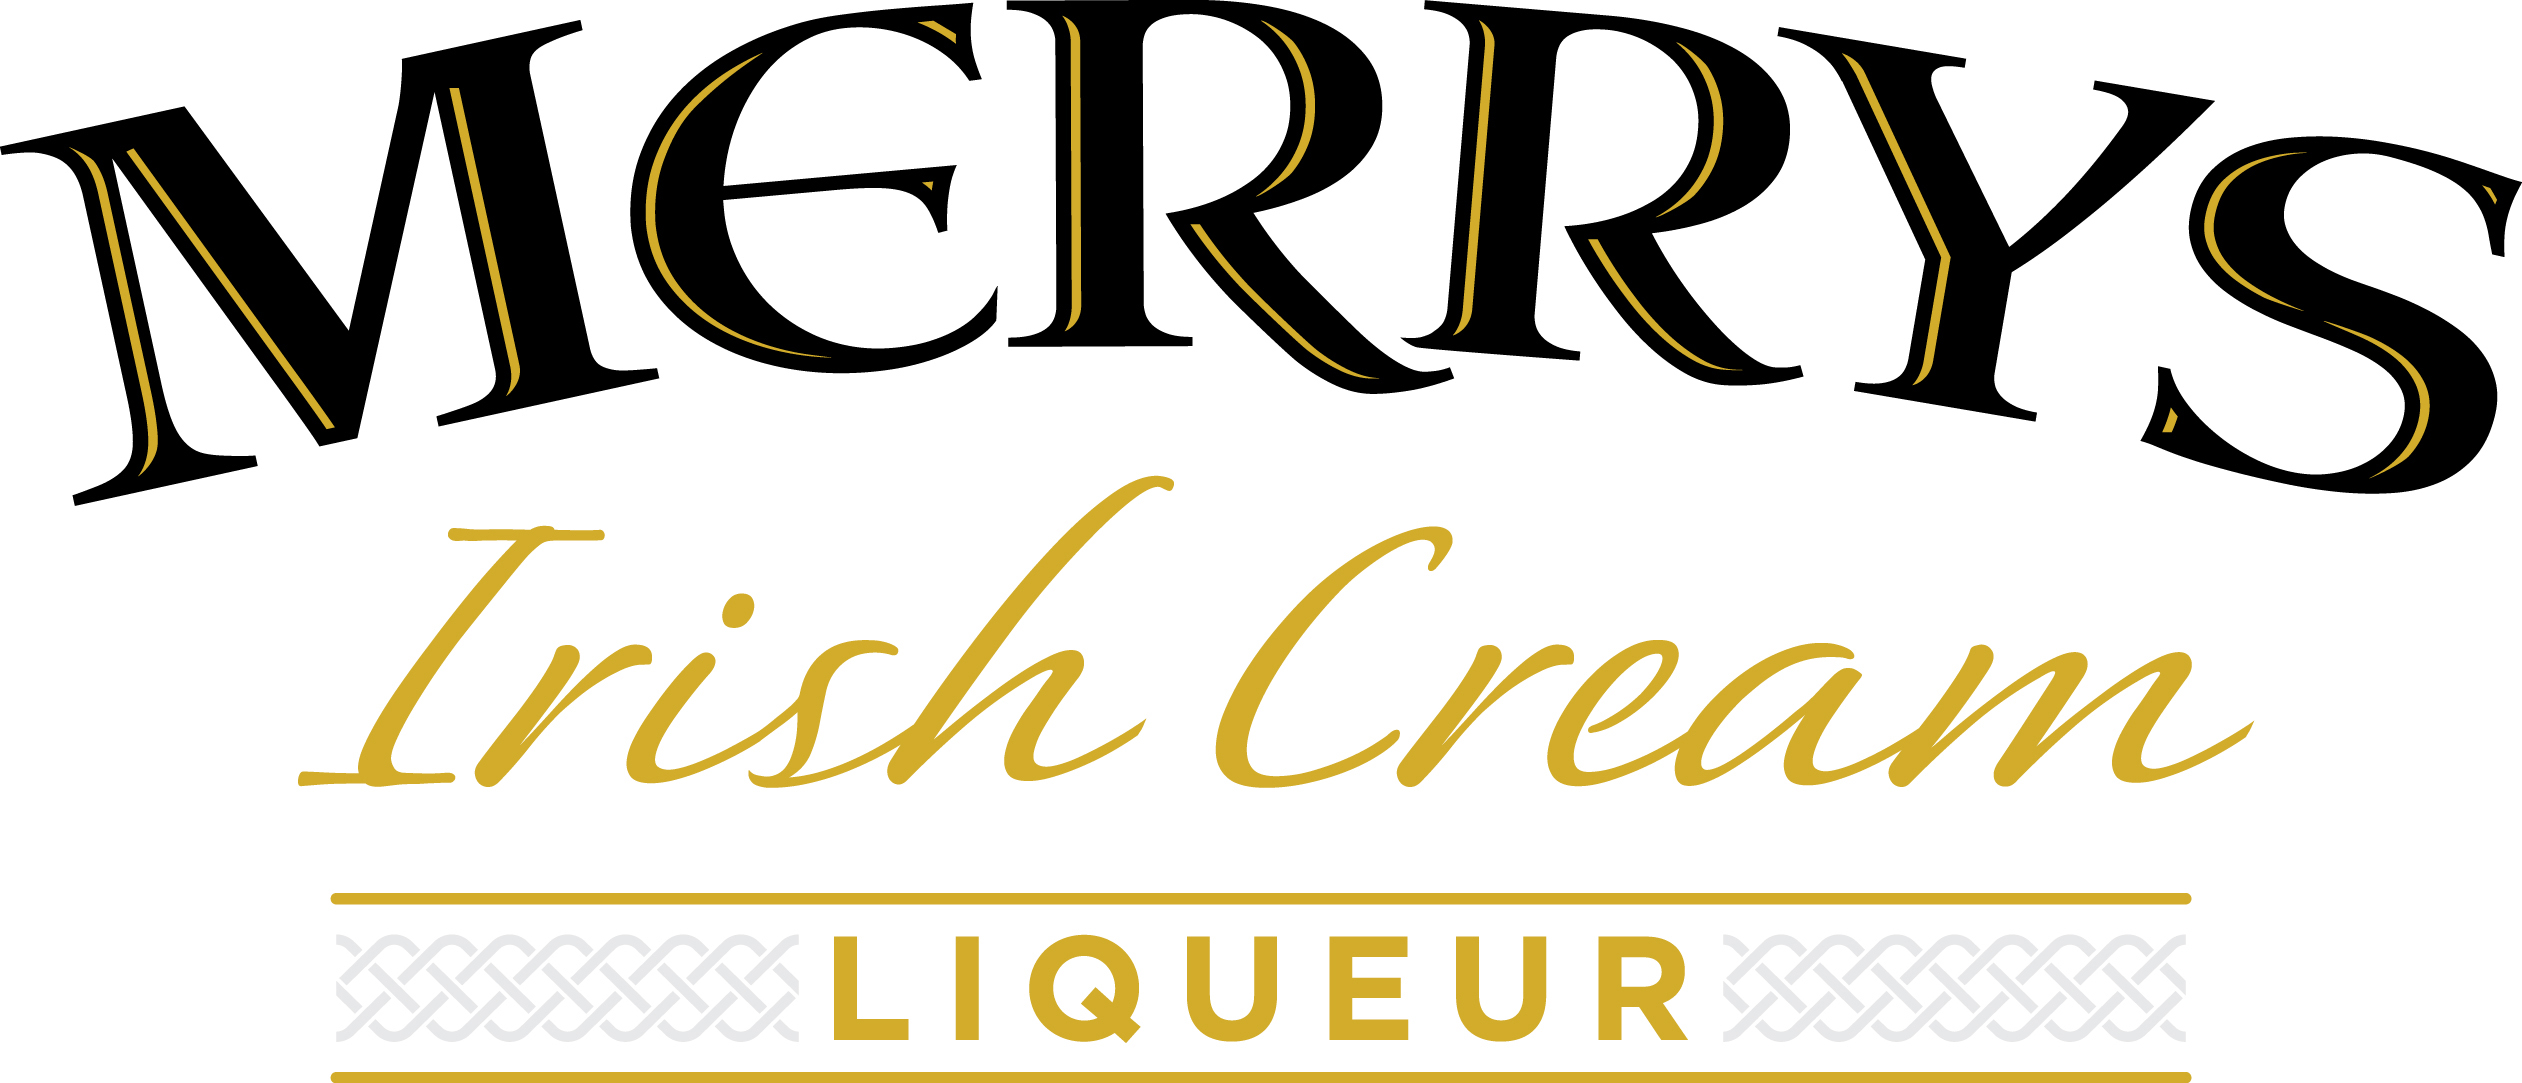 Robert A Merry & Co Limited logotype